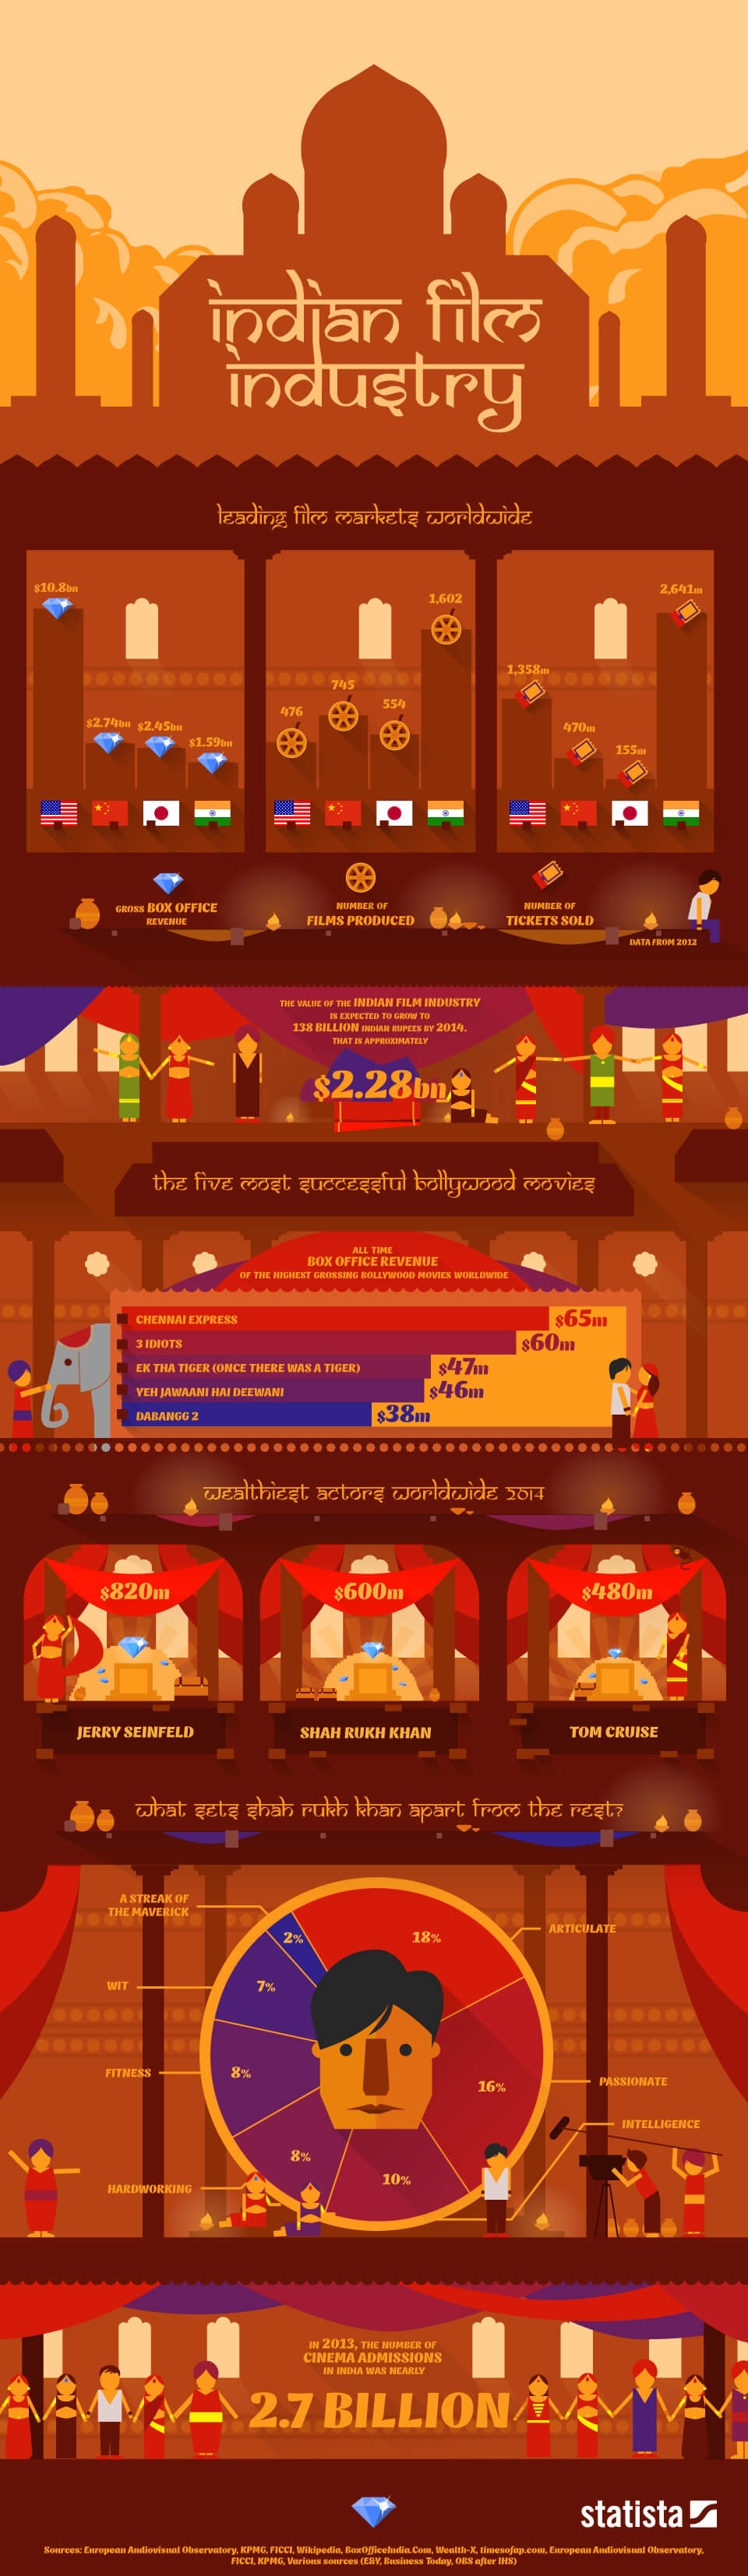 Infographic: The Indian Film Industry  | Statista